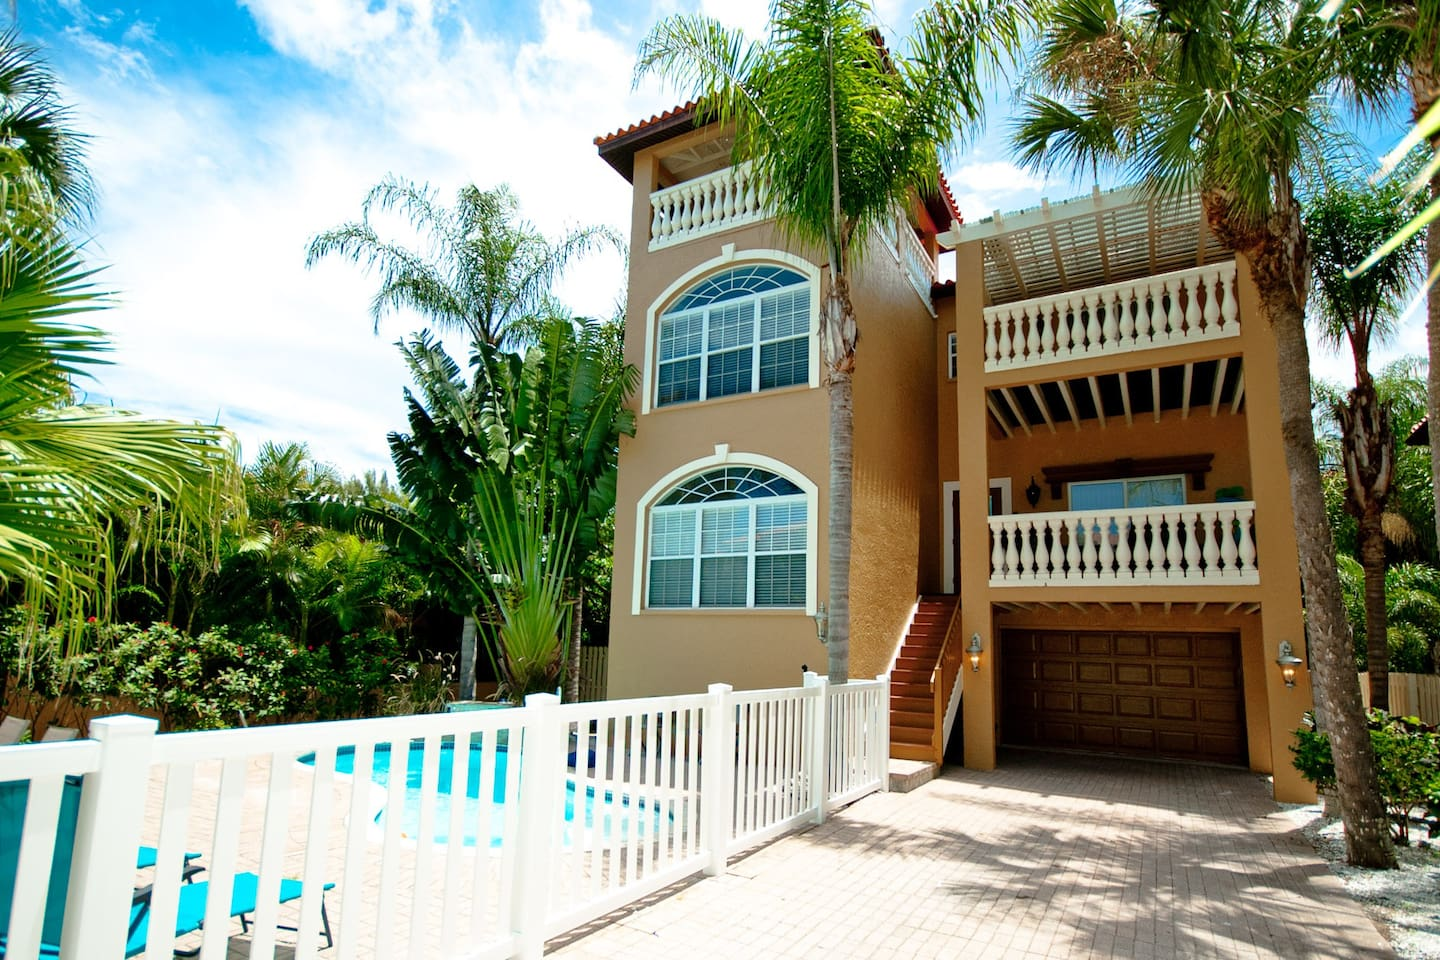 This spacious, 3-story beach home with a private pool & comfortable outdoor living spaces will help you make the most of your trip to beautiful Anna Maria Island. Third floor balcony overlooks the private pool, and gives glimpse to the gulf & bay.